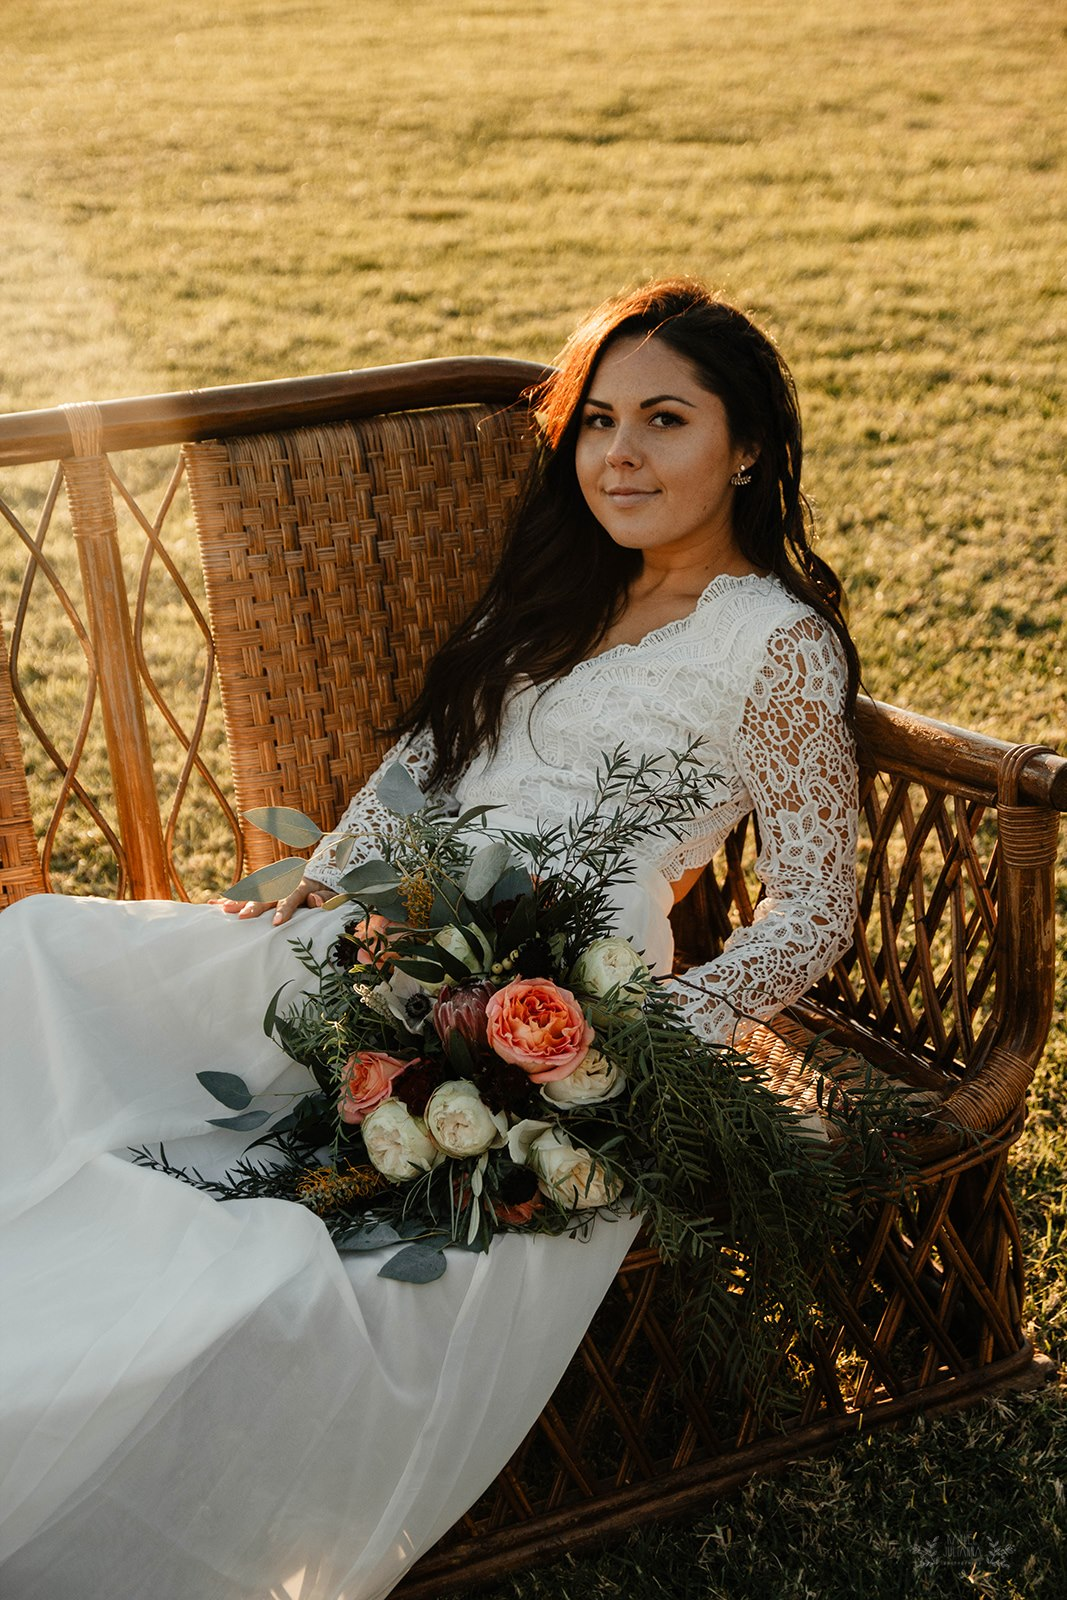 Bride on Wicker Sofa